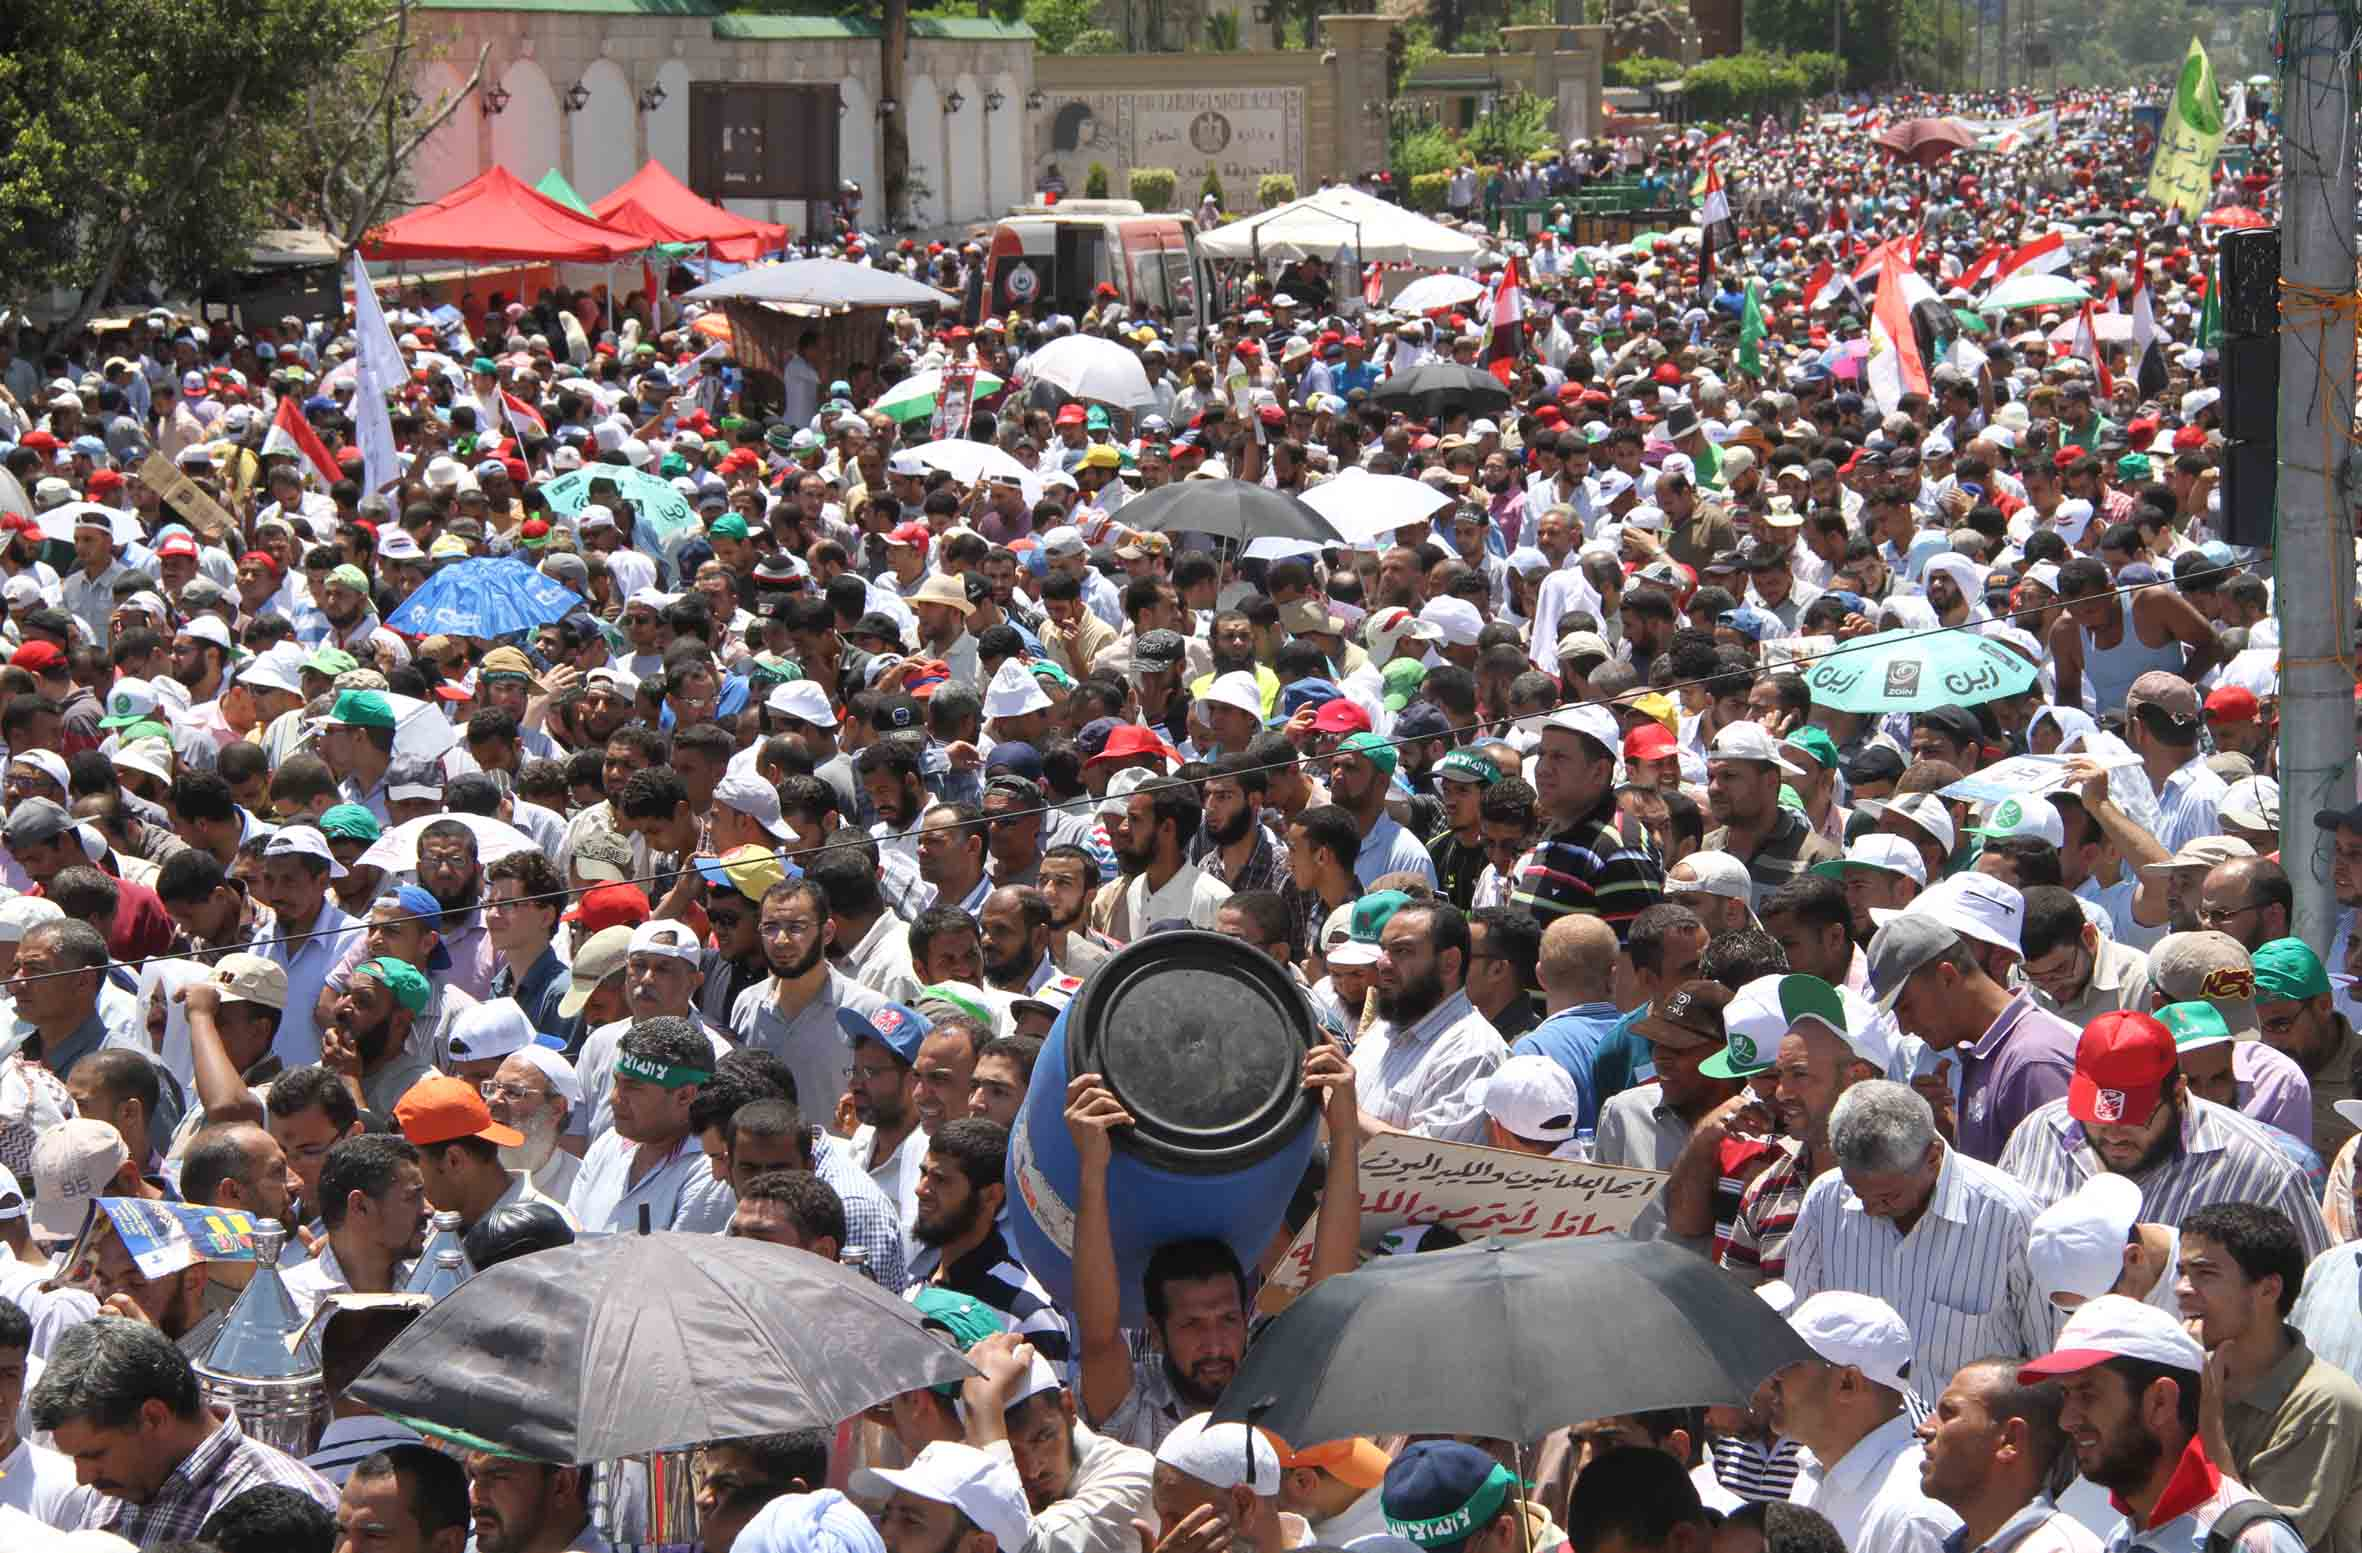 Tagarod (pro-Morsi campaign) participated in mass protests on Friday in front of Raba'a 'Adaweya mosque in Nasr City in support for President Morsi. (Photo by Mohamed Omar)